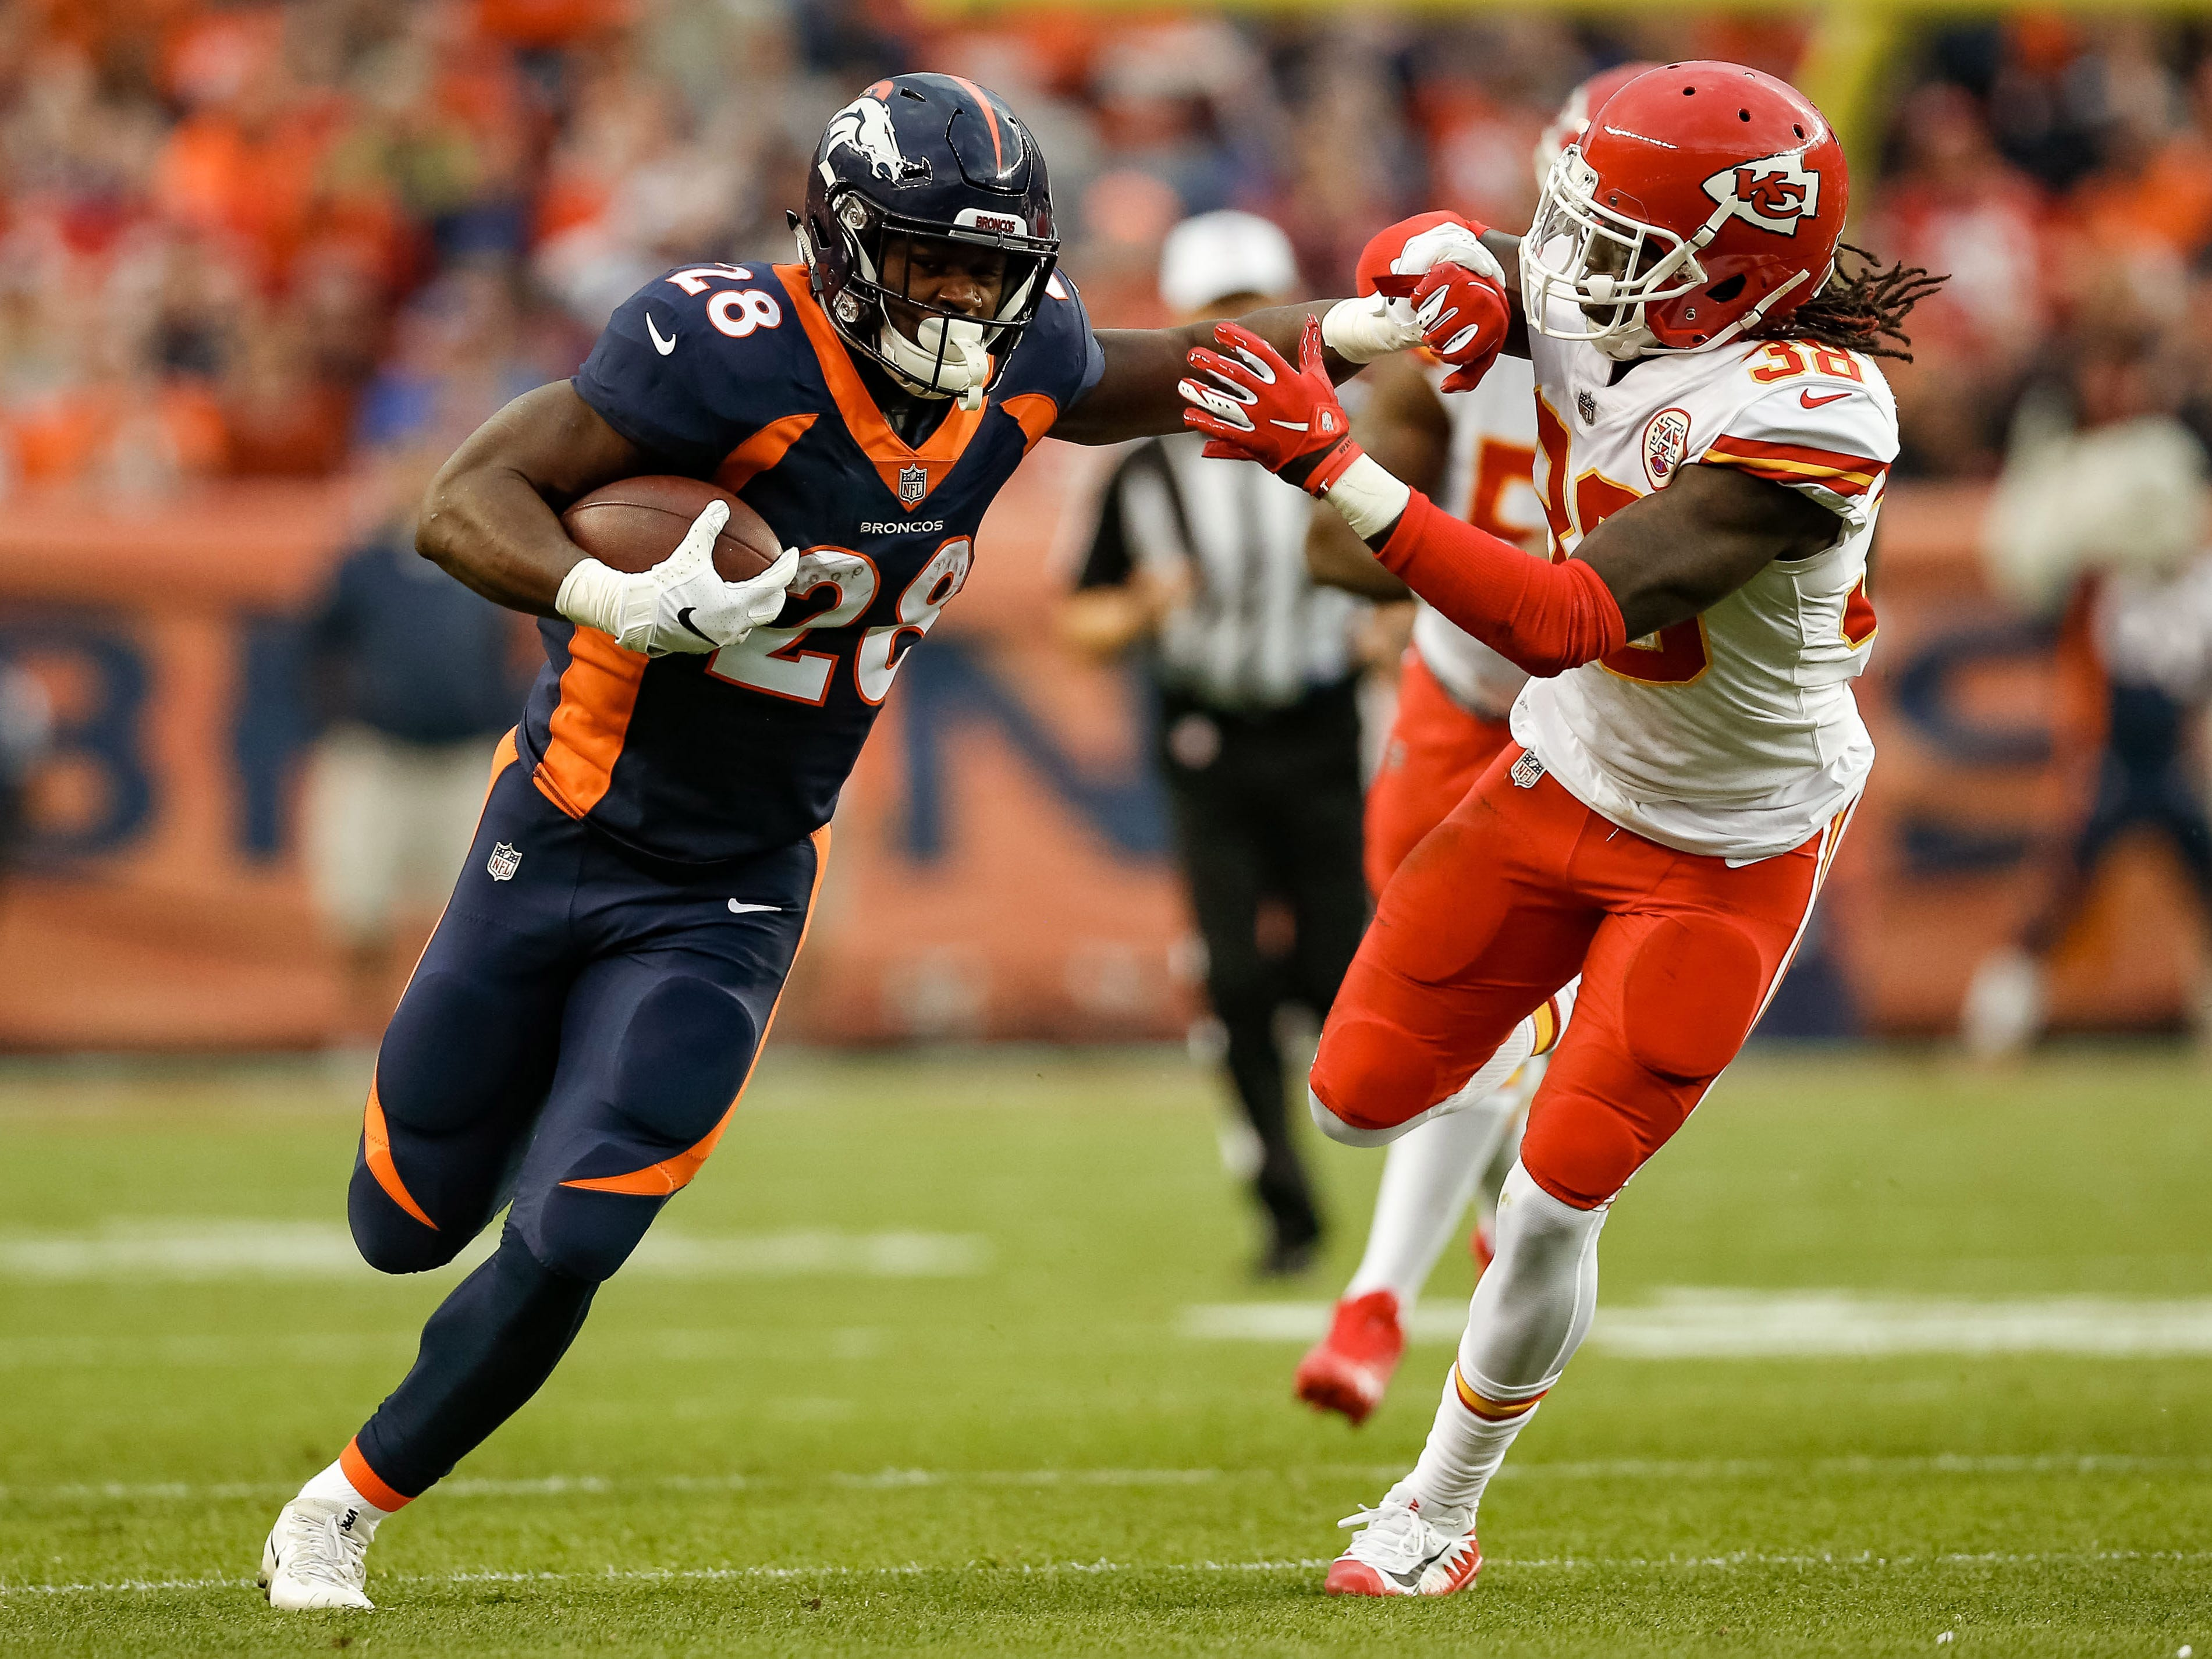 Denver Broncos running back Royce Freeman  runs the ball against the Kansas City Chiefs in the first quarter at Broncos Stadium at Mile High.